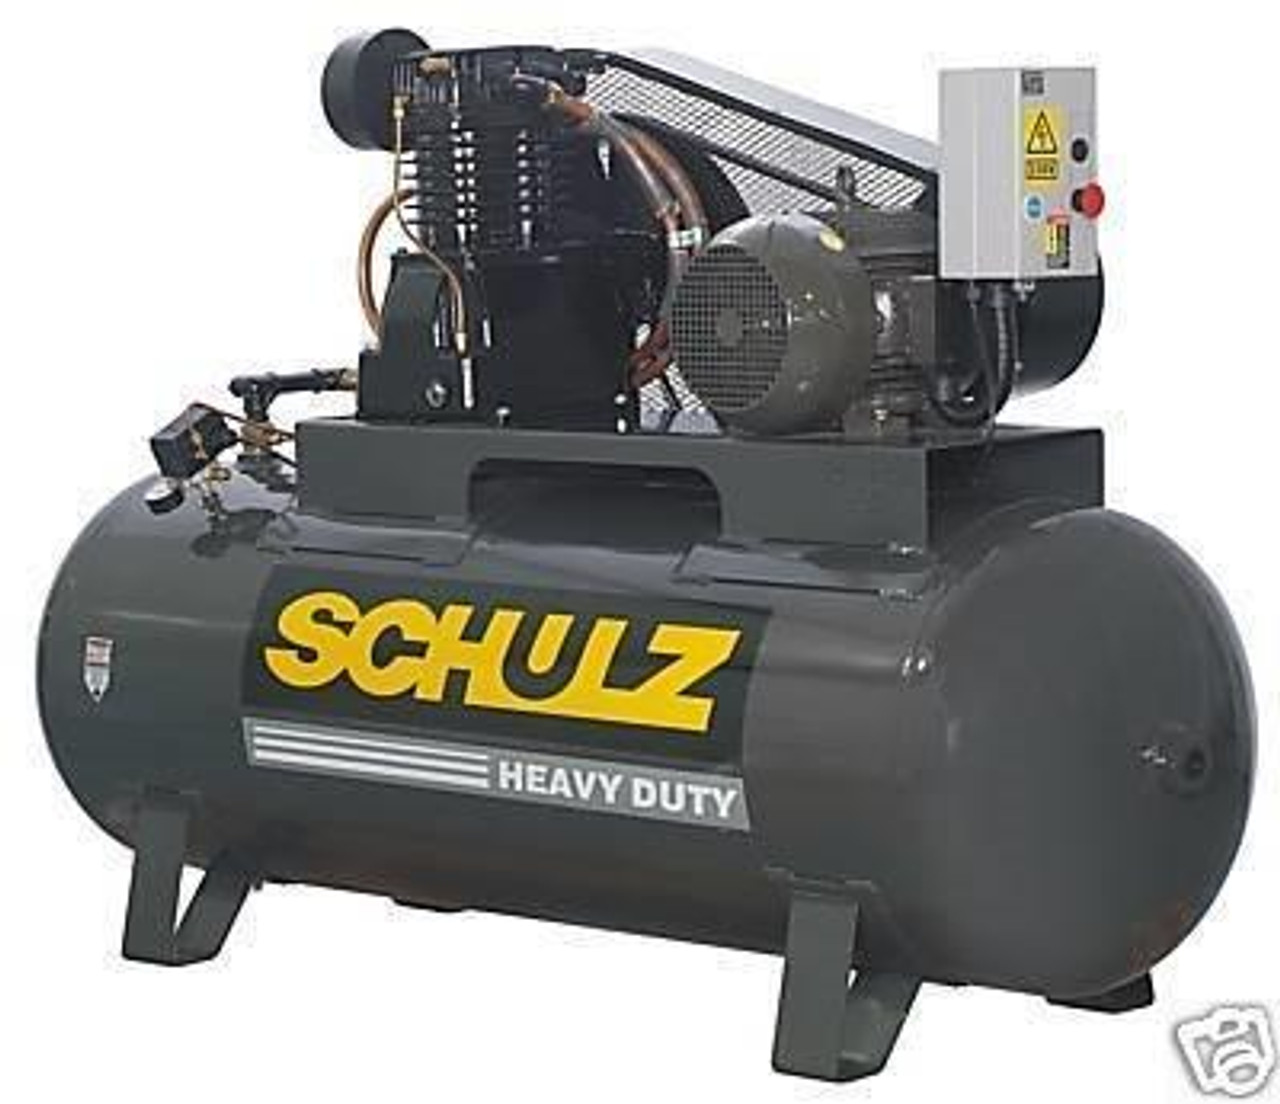 Schulz 10120HL40X-3 10 HP 460 Volt Three Phase Two Stage 120 Gallon Air Compressor